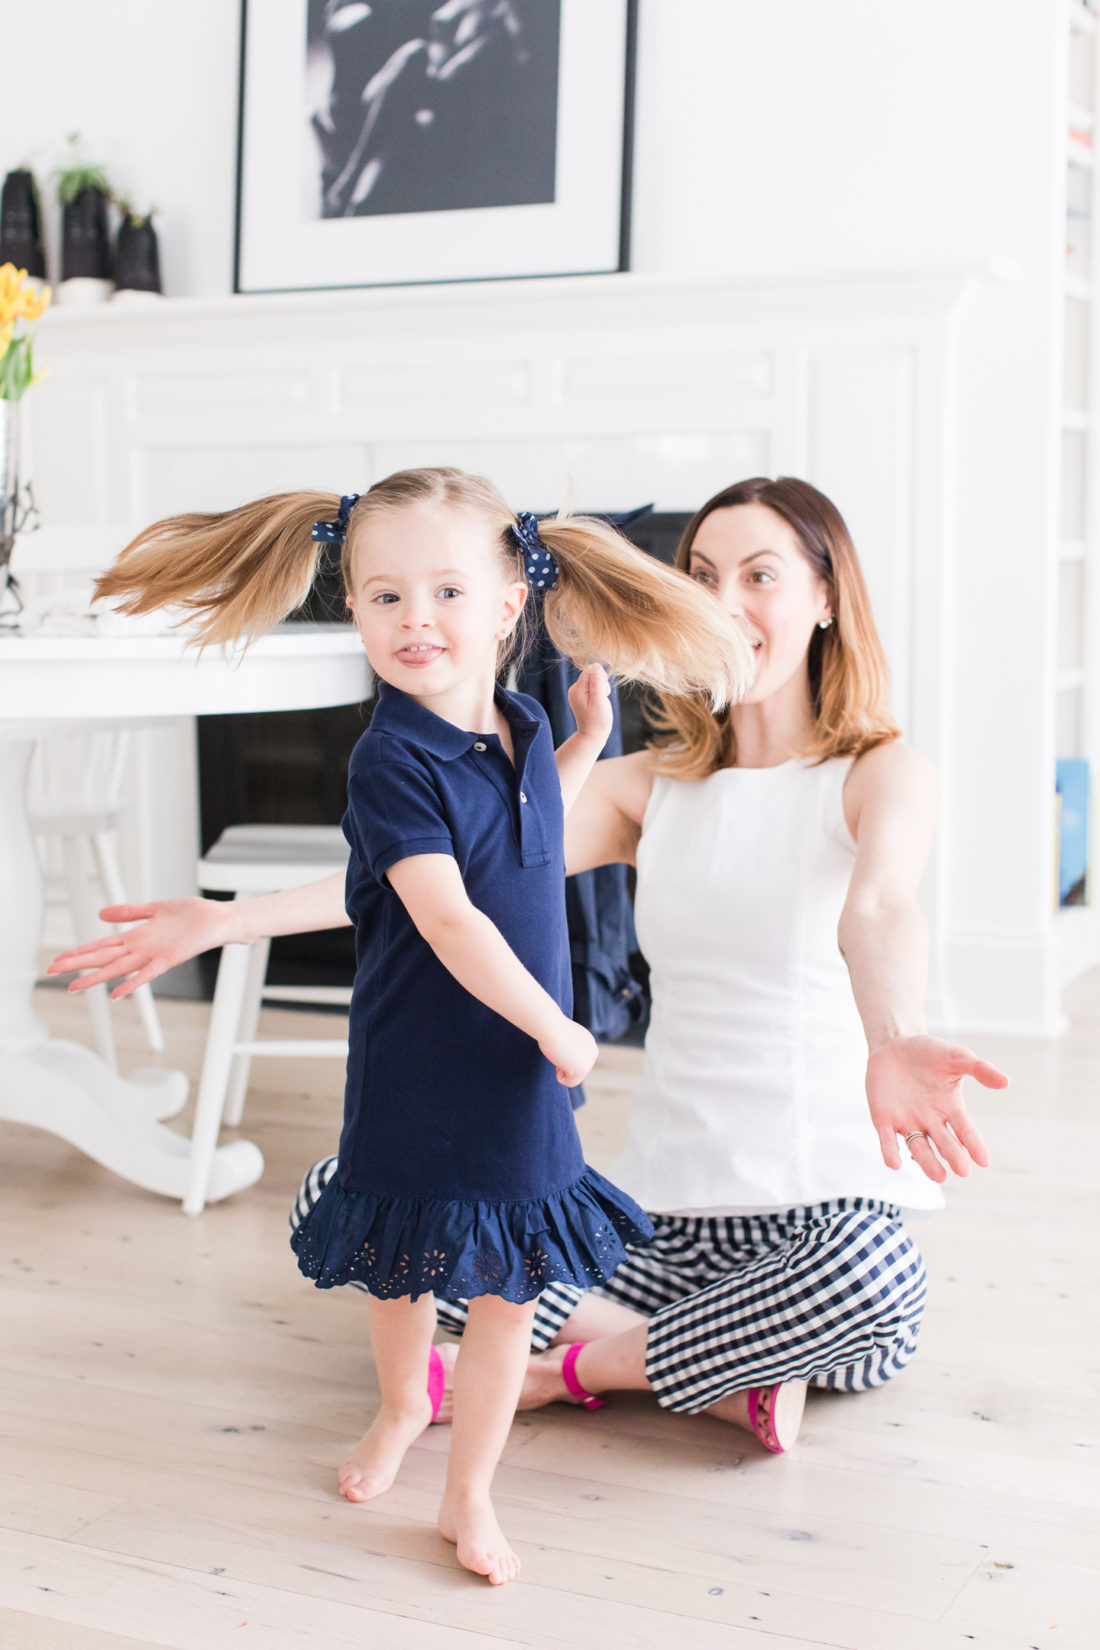 Marlowe Martino twirls in her new secondhand Ralph Lauren dress and pigtails